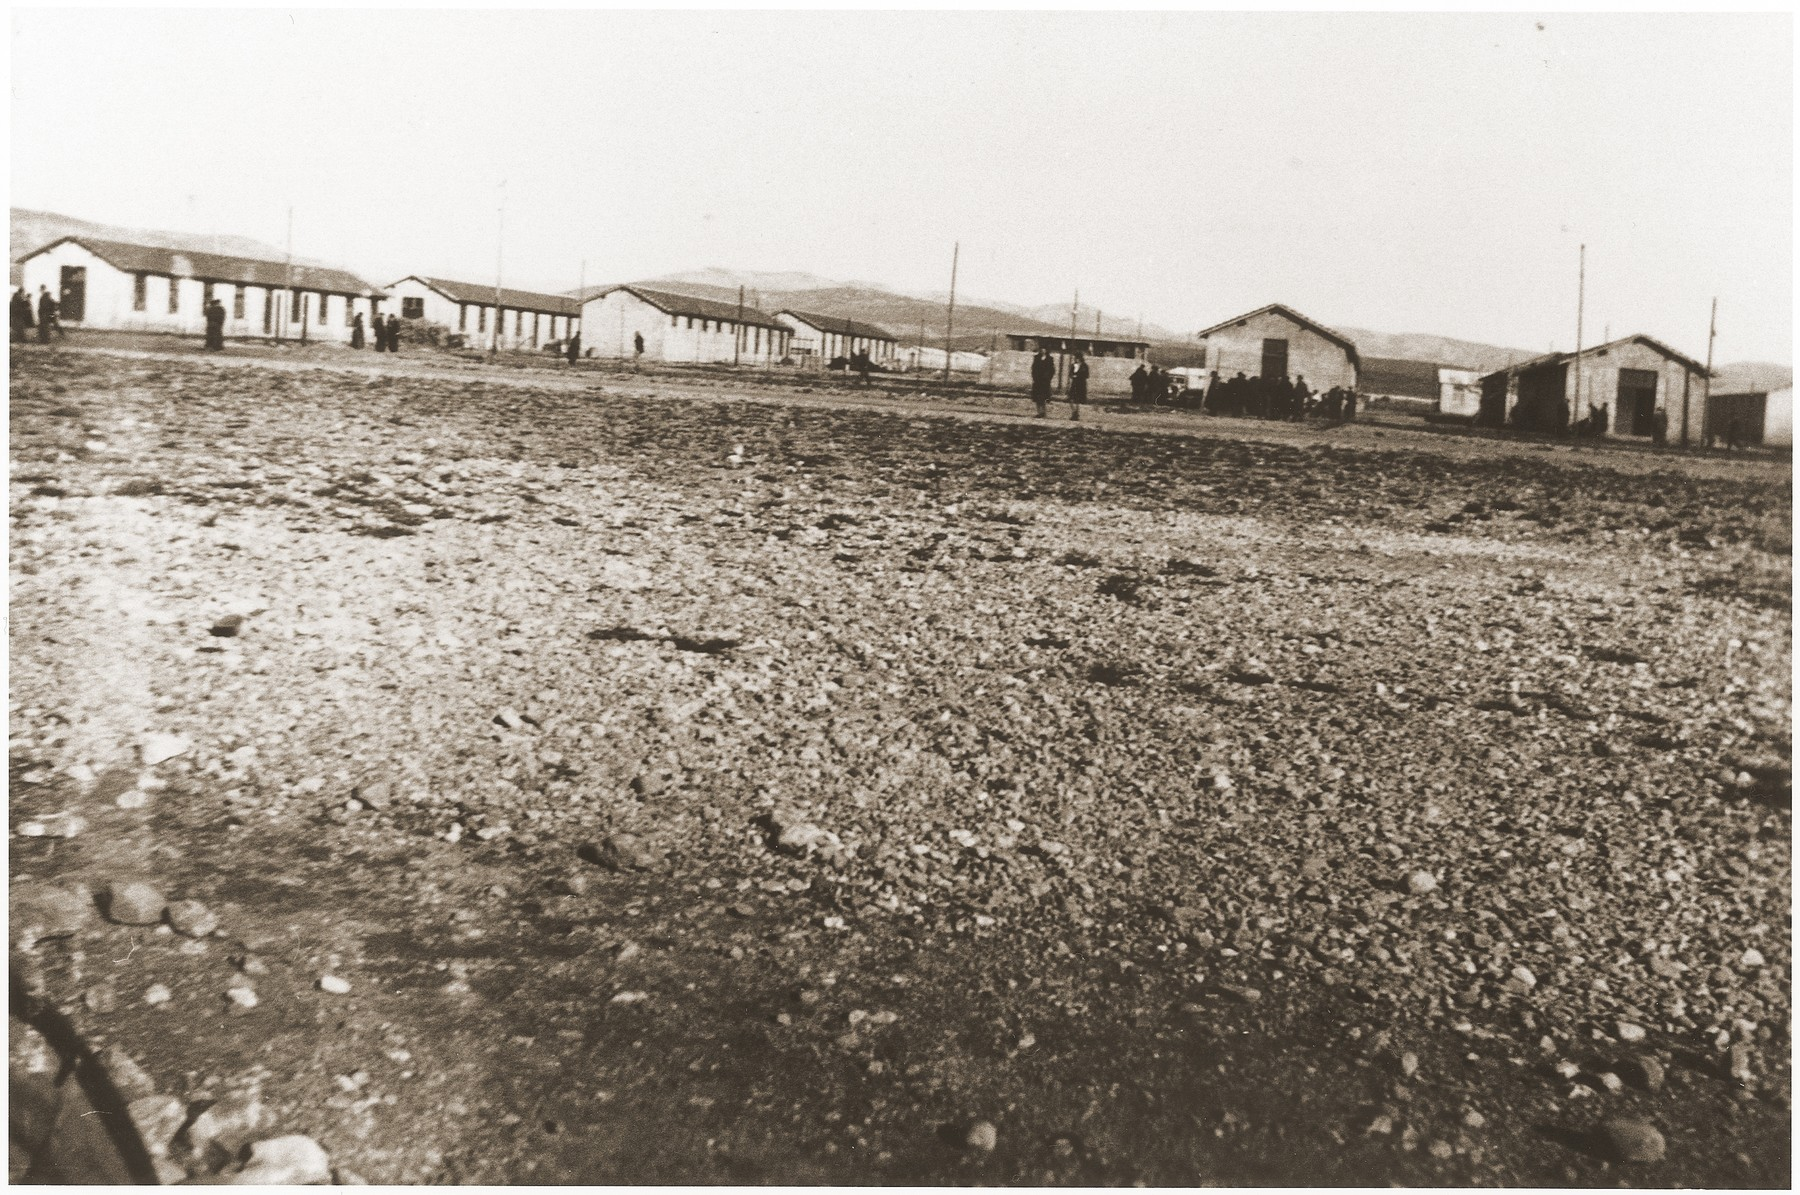 View of the Rivesaltes internment camp.